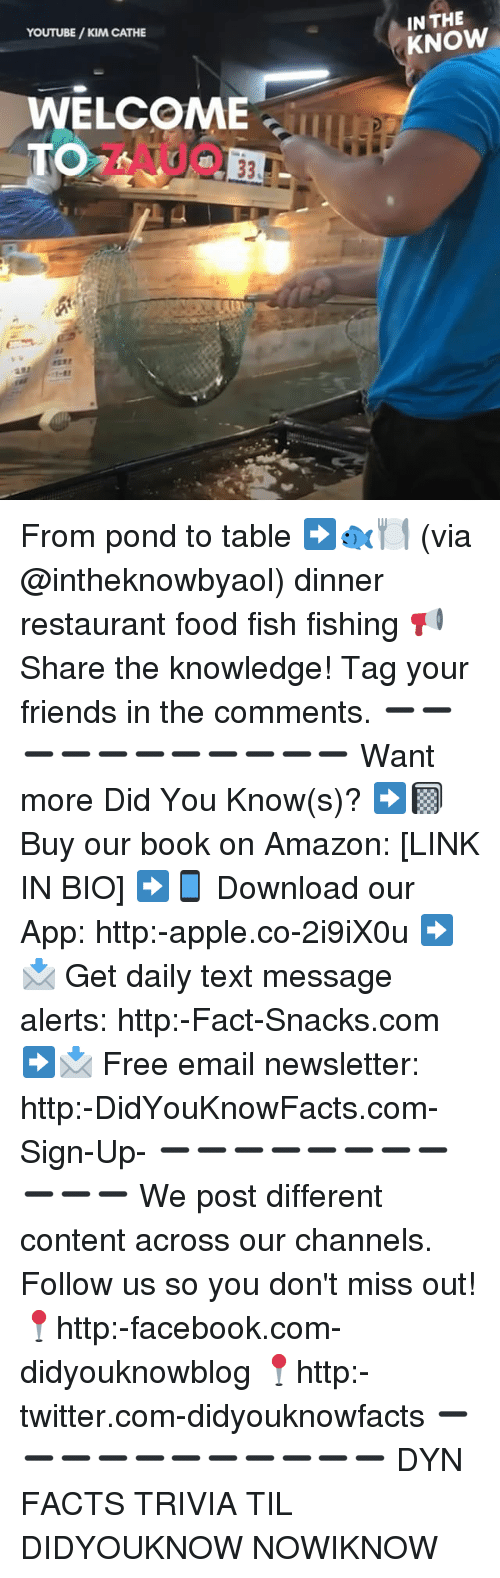 Amazon, Apple, and Facebook: YOUTUBE/KIM CATHE  IN THE  KNOW  WELCOME  TO From pond to table ➡️🐟🍽 (via @intheknowbyaol) dinner restaurant food fish fishing 📢 Share the knowledge! Tag your friends in the comments. ➖➖➖➖➖➖➖➖➖➖➖ Want more Did You Know(s)? ➡📓 Buy our book on Amazon: [LINK IN BIO] ➡📱 Download our App: http:-apple.co-2i9iX0u ➡📩 Get daily text message alerts: http:-Fact-Snacks.com ➡📩 Free email newsletter: http:-DidYouKnowFacts.com-Sign-Up- ➖➖➖➖➖➖➖➖➖➖➖ We post different content across our channels. Follow us so you don't miss out! 📍http:-facebook.com-didyouknowblog 📍http:-twitter.com-didyouknowfacts ➖➖➖➖➖➖➖➖➖➖➖ DYN FACTS TRIVIA TIL DIDYOUKNOW NOWIKNOW